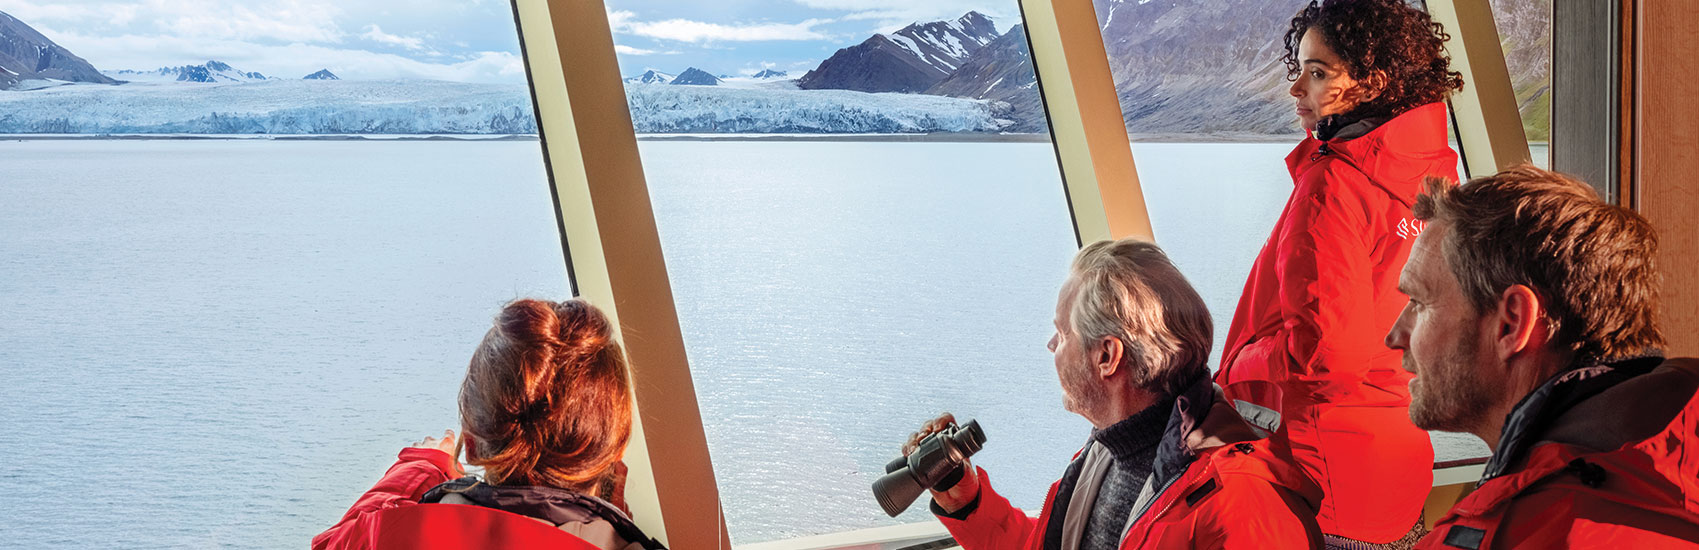 Memories To Last A Lifetime With Silversea